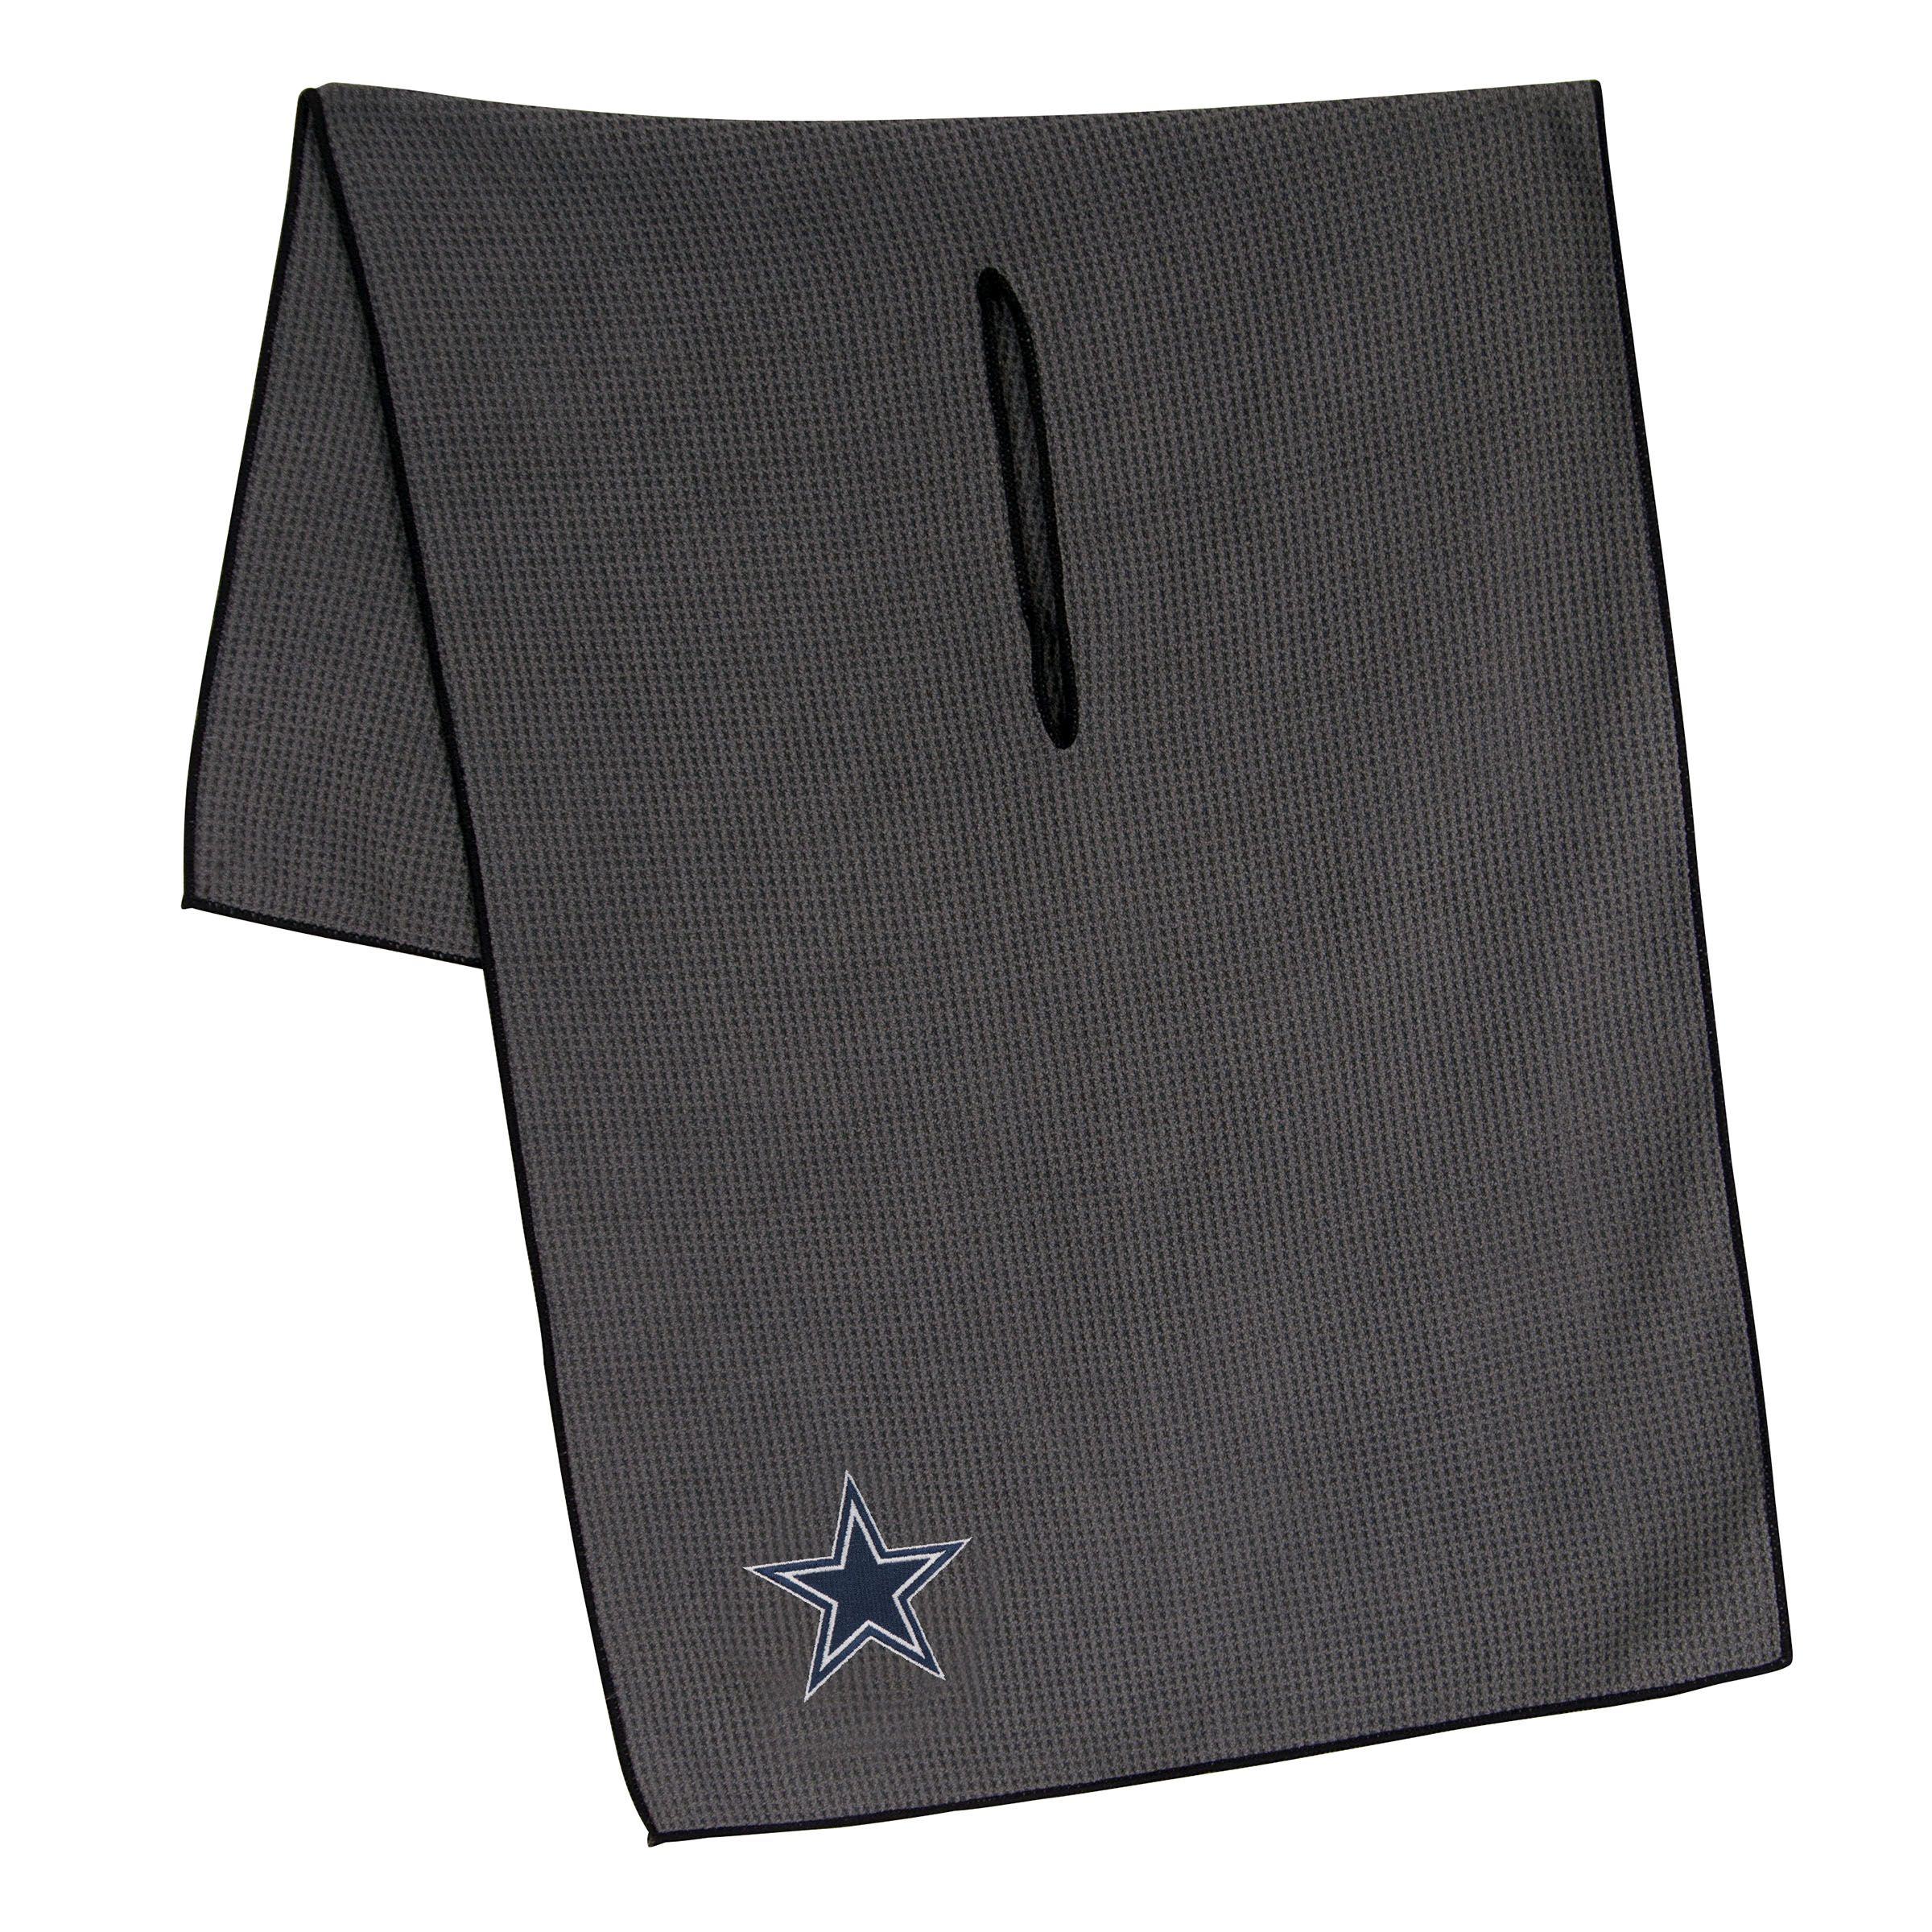 Dallas Cowboys NFL Golf Equipment - golf towel